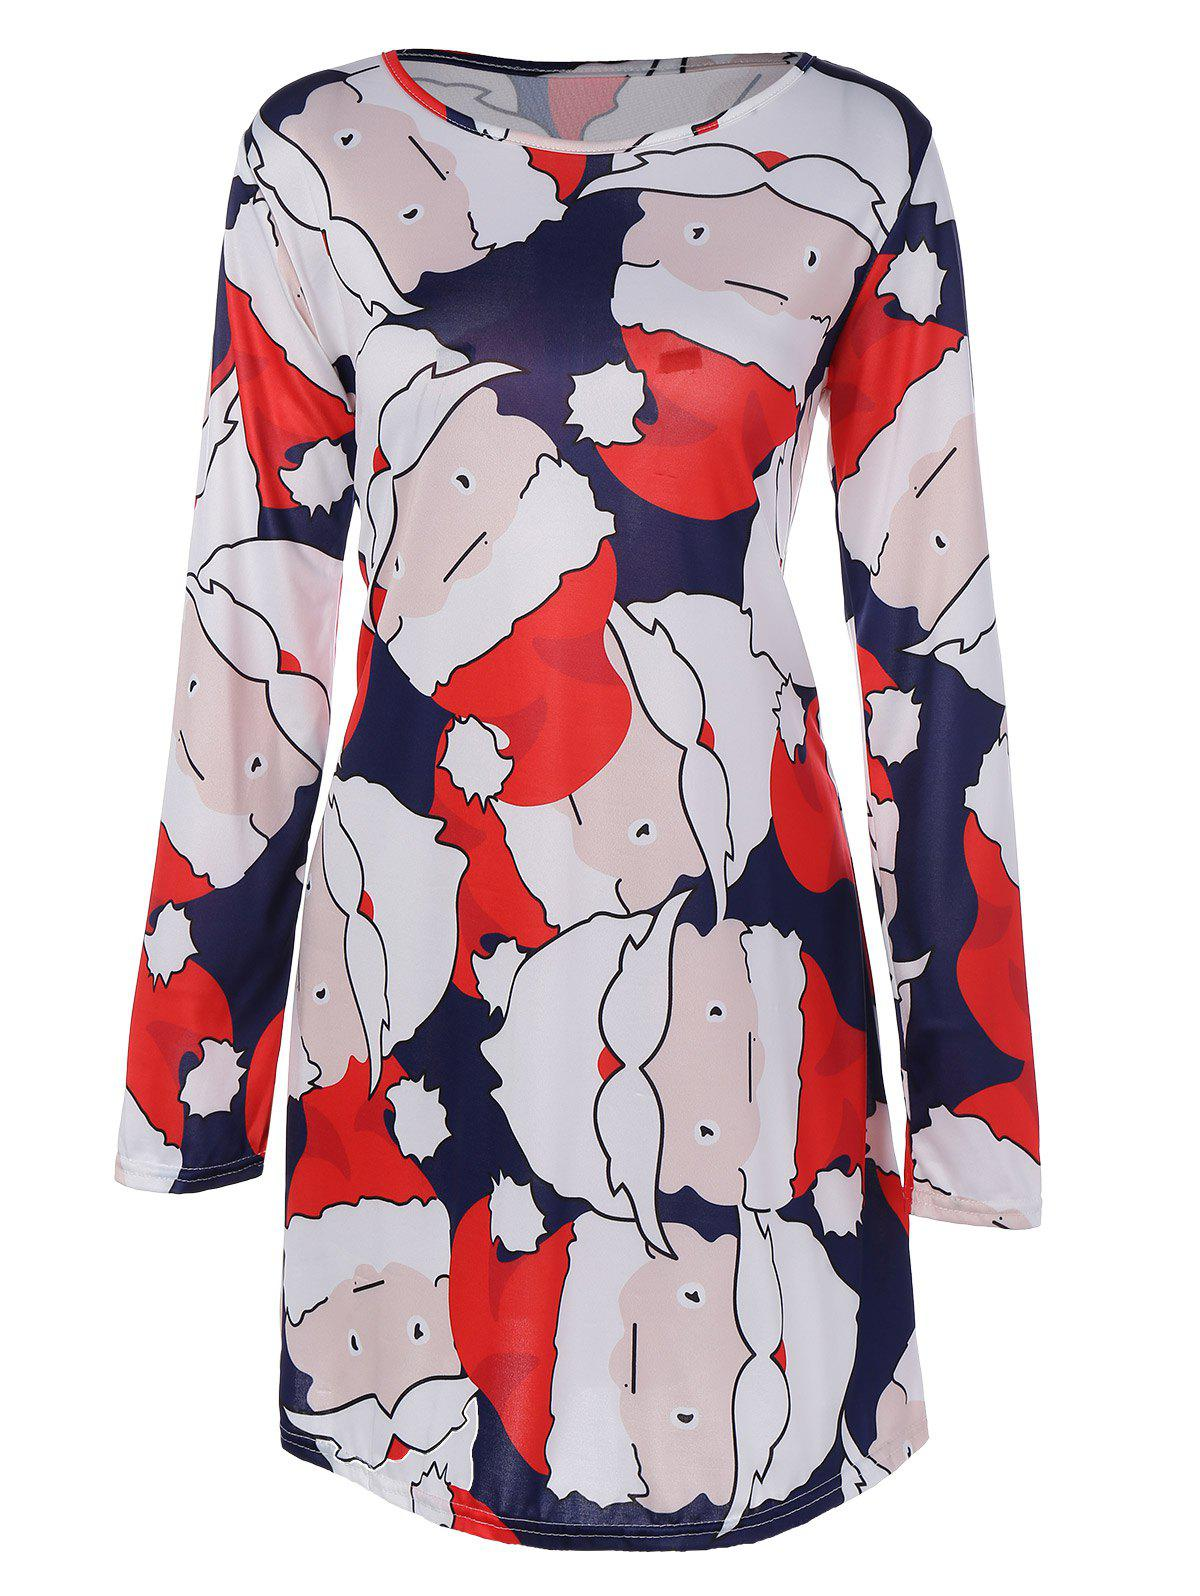 Santa Claus Christmas DressWOMEN<br><br>Size: L; Color: DEEP BLUE; Style: Brief; Material: Spandex; Silhouette: A-Line; Dresses Length: Mini; Neckline: Jewel Neck; Sleeve Length: Long Sleeves; Pattern Type: Print; With Belt: No; Season: Fall,Spring,Winter; Weight: 0.216kg; Package Contents: 1 x Dress;